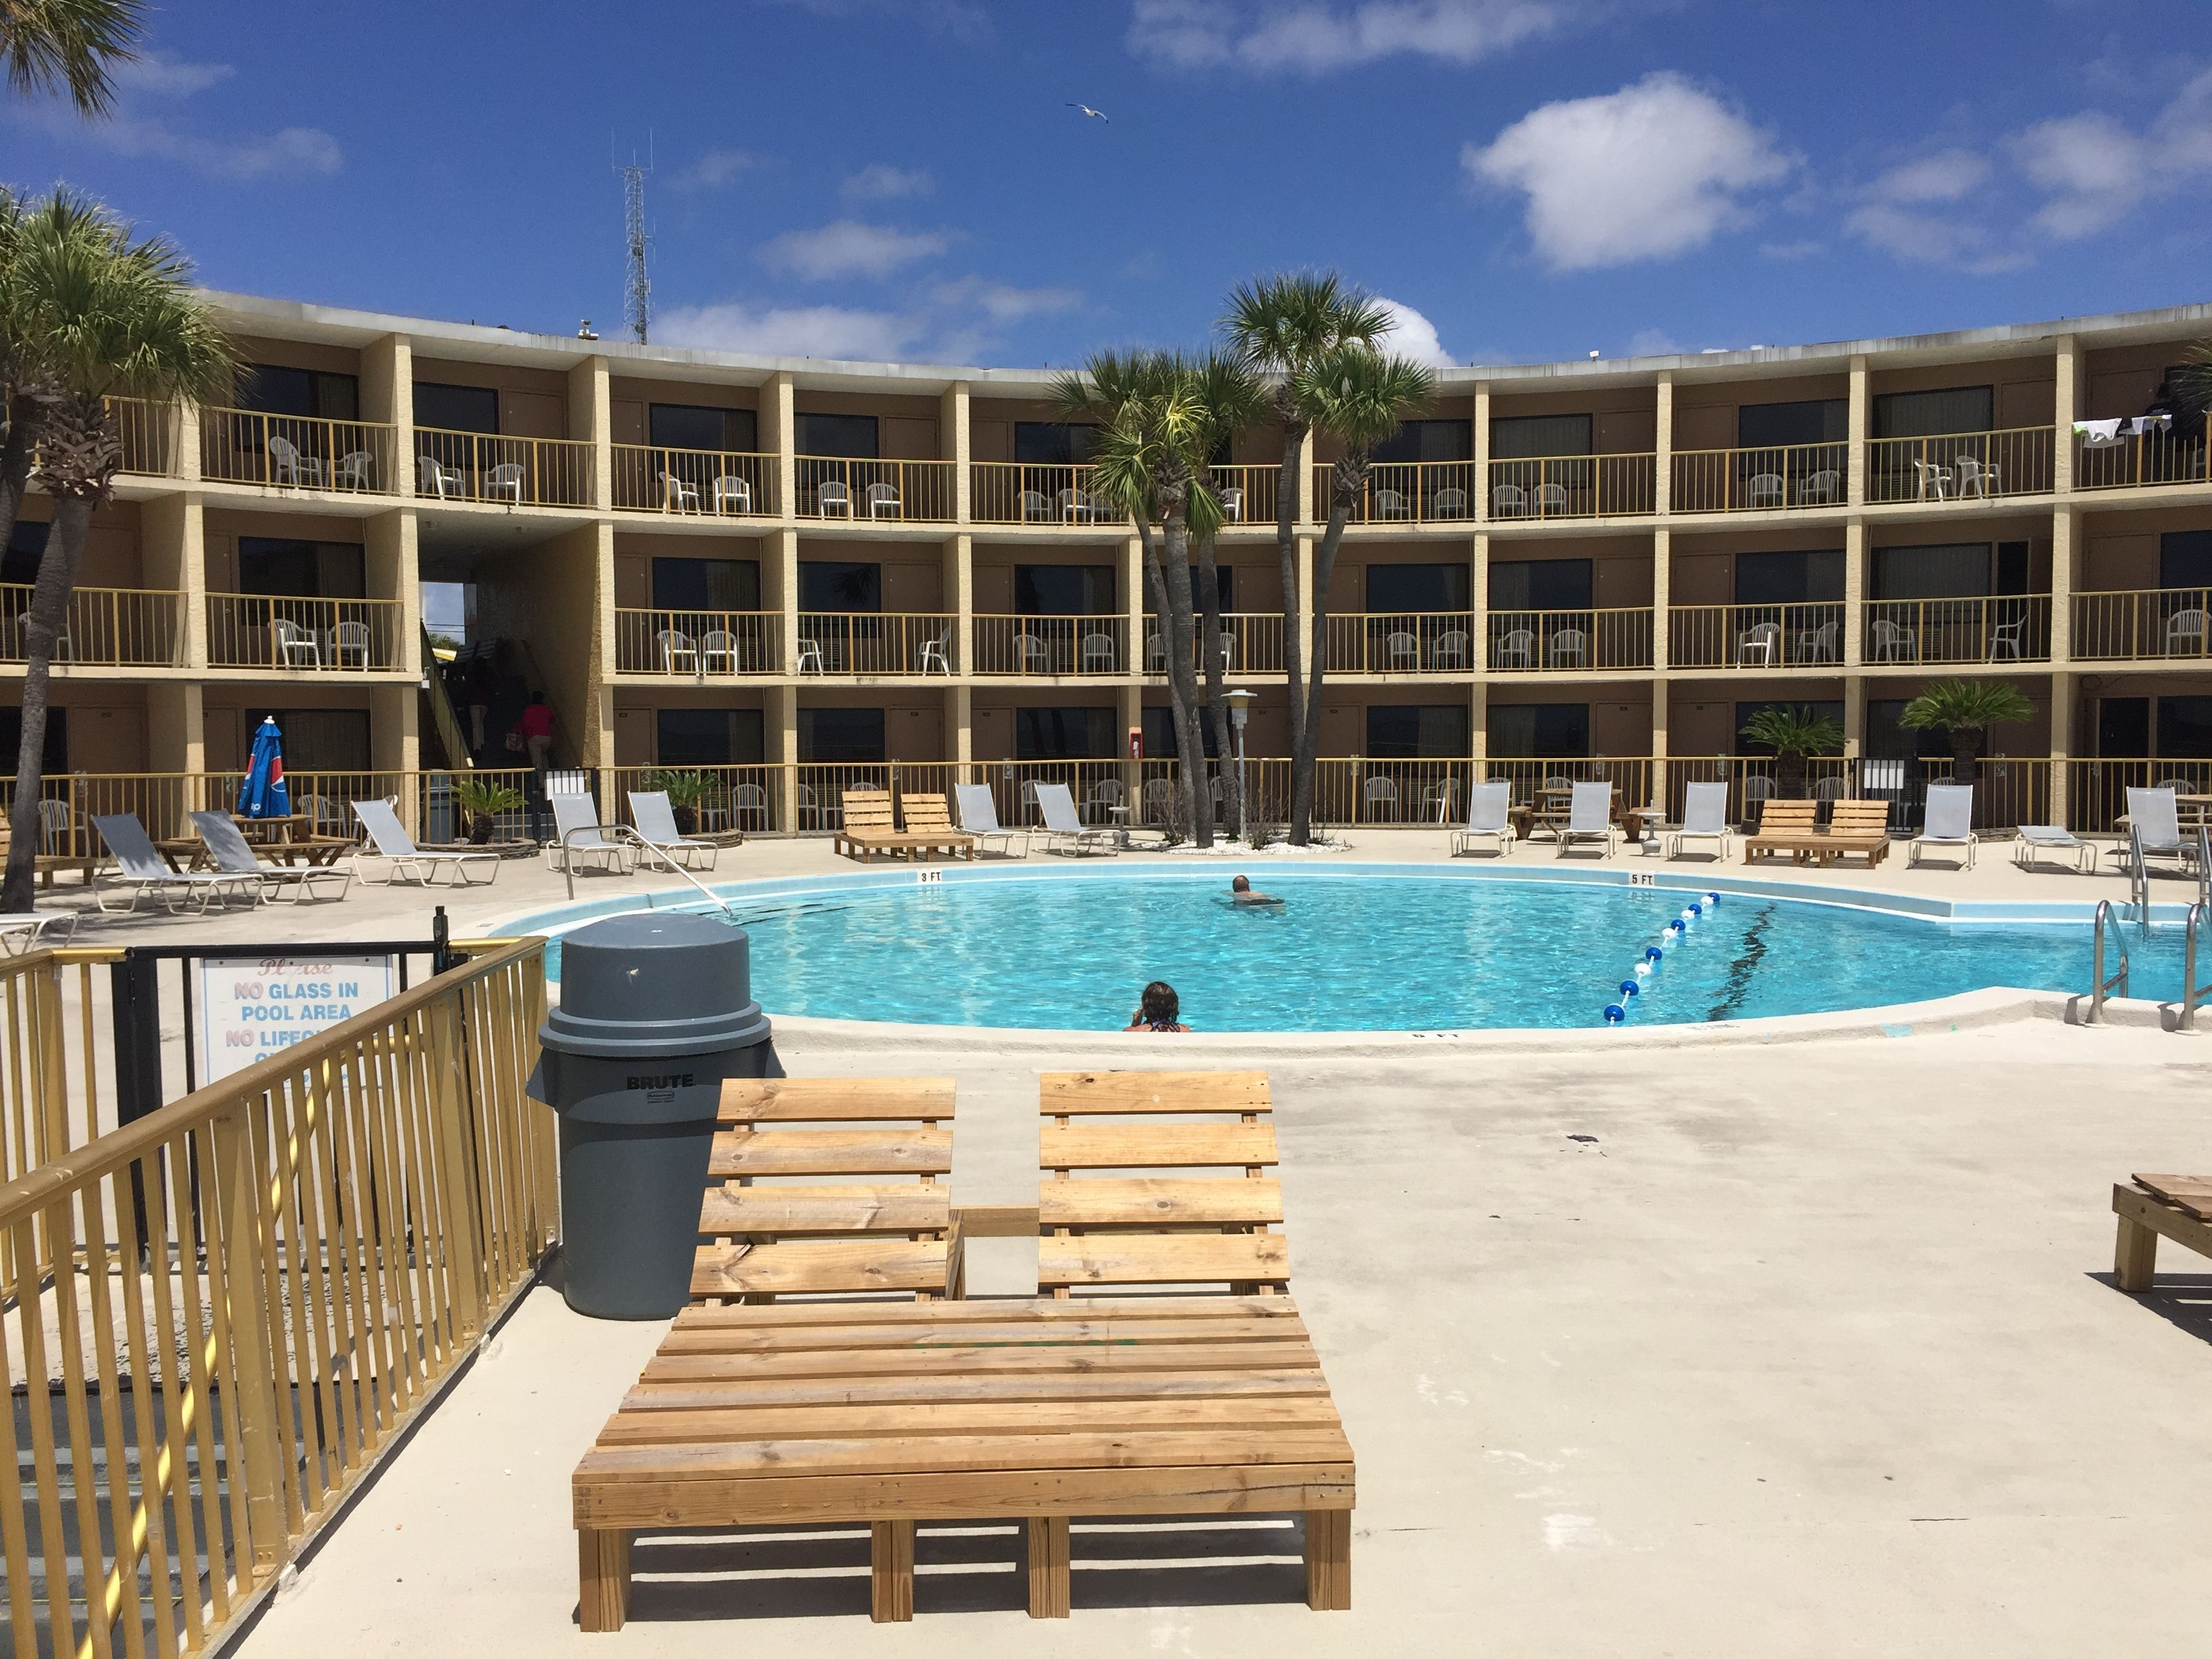 Spend All Day Alternating Between The Pool And Beach At Chateau By The Sea In Panama City Panama City Beach Resorts Panama City Beach Hotels Panama City Hotels